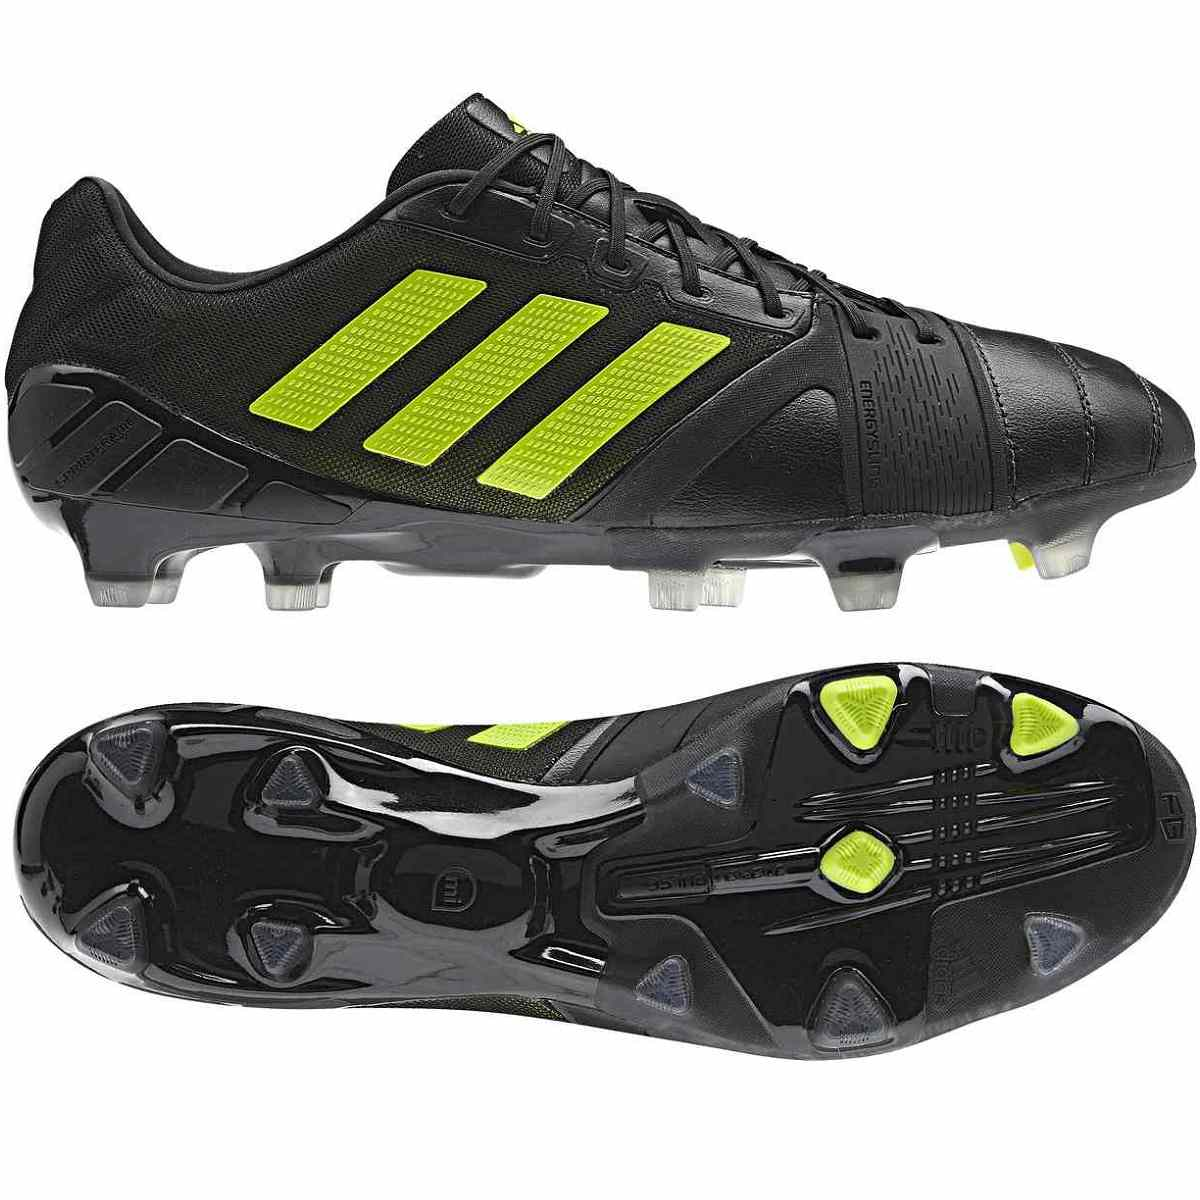 adidas nitrocharge 1 0 trx fg mens football boots 28. Black Bedroom Furniture Sets. Home Design Ideas